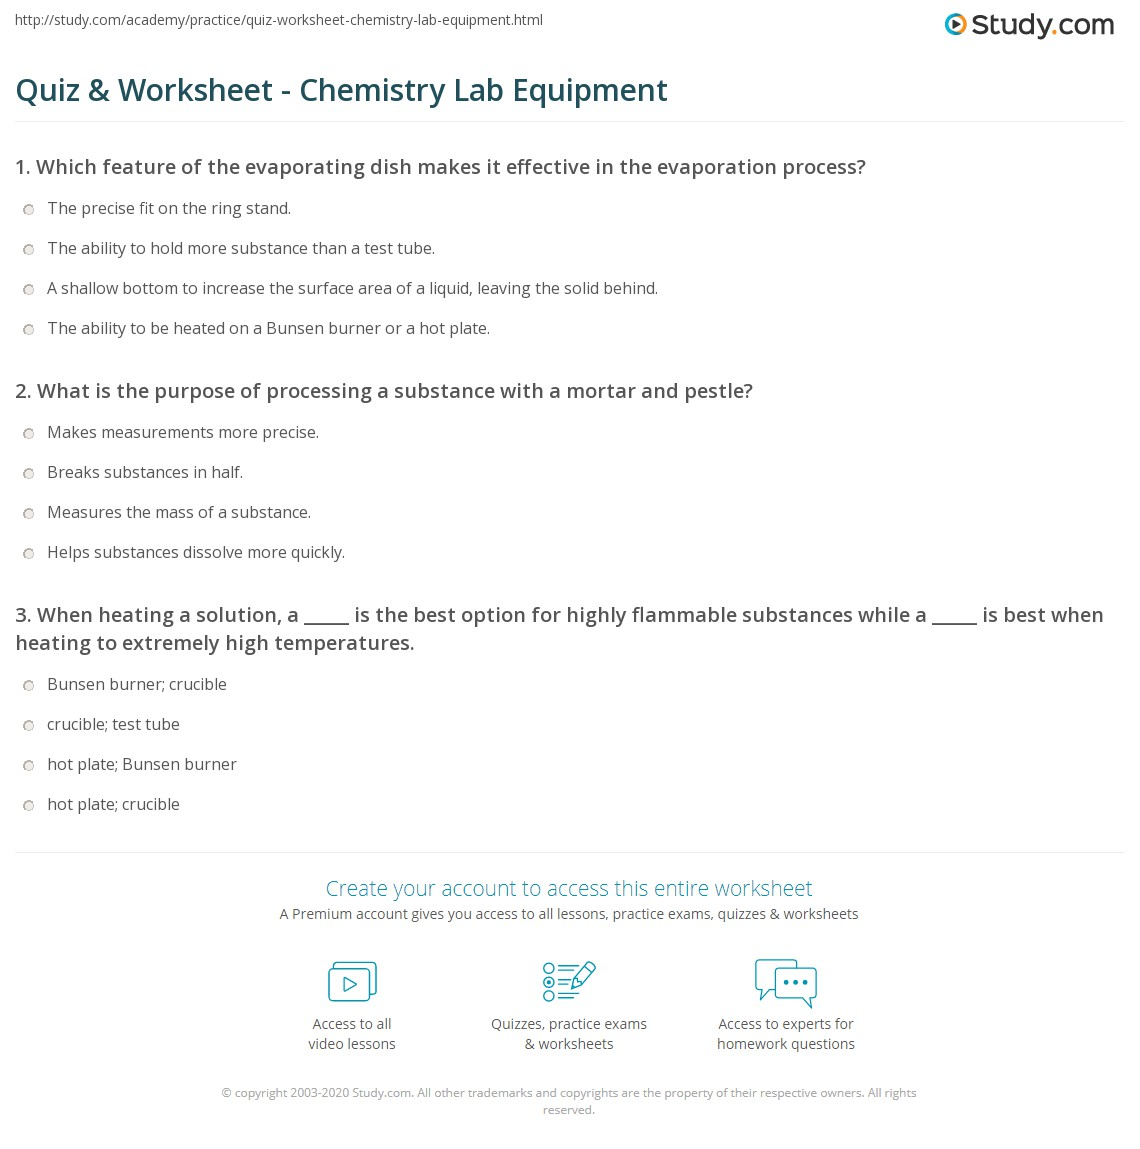 Worksheets Chemistry Lab Equipment Worksheet quiz worksheet chemistry lab equipment study com print supplies glassware more worksheet